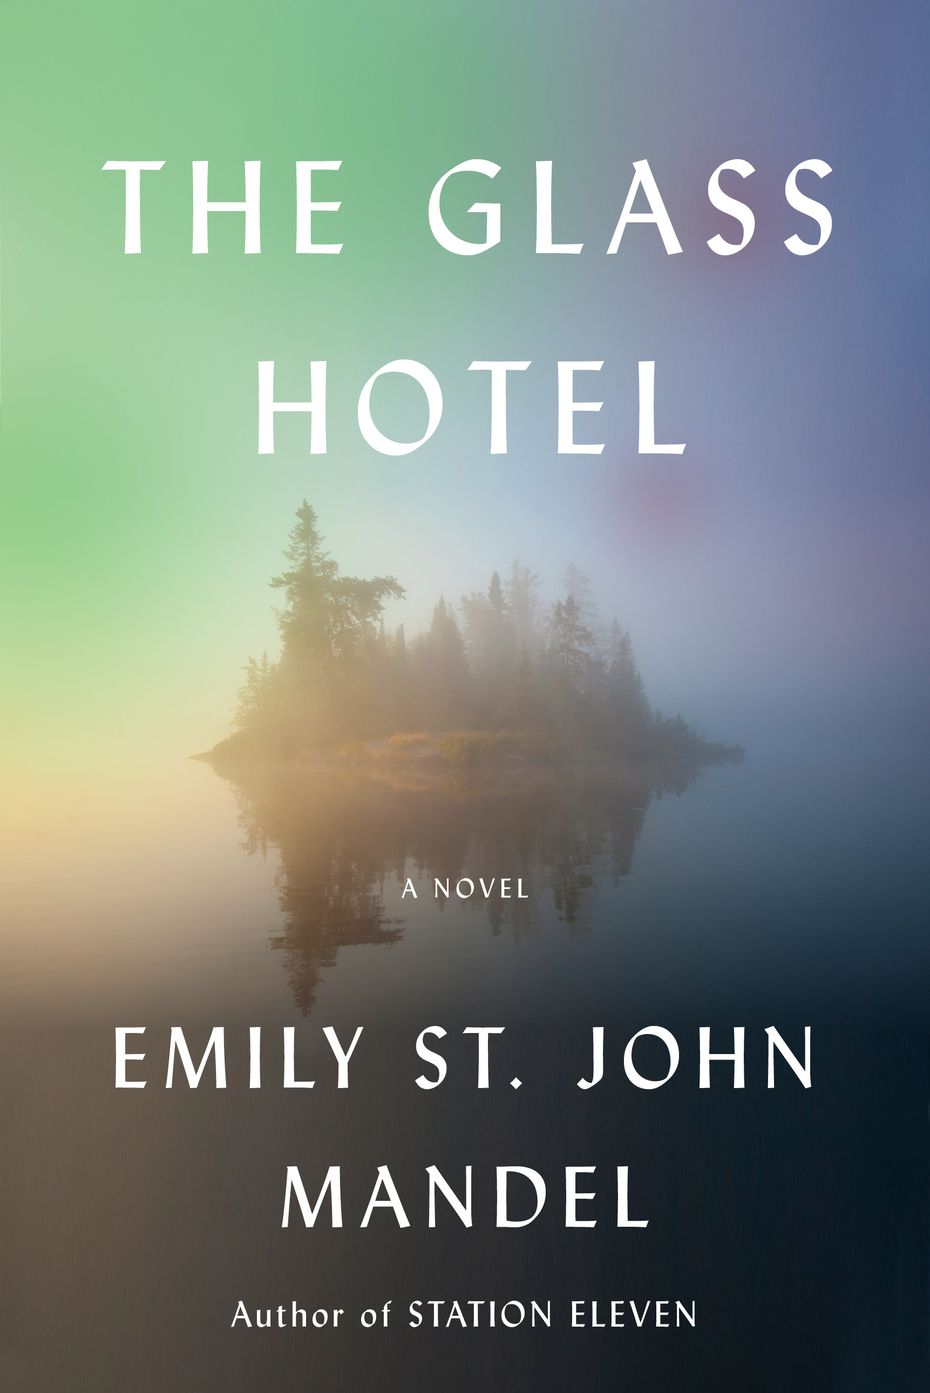 """The Glass Hotel"" by Emily St. John Mandel is about a financial scandal involving a Ponzi scheme in the Bernie Madoff mold."